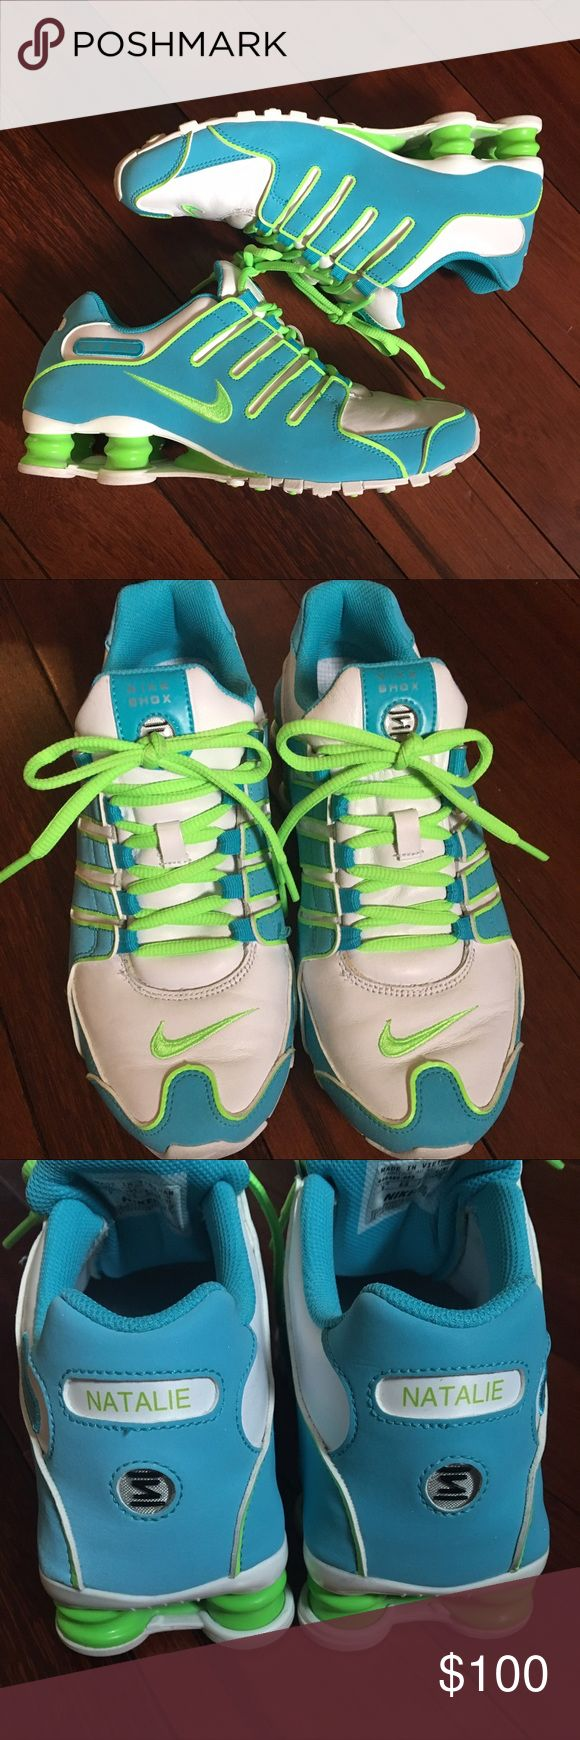 """NWOT Customized Nike Shox tennis shoes Brand new condition!! Worn once! Women's customized Nike iD Shox tennis shoes, size 9! Has blue, lime green and white detailing. Only flaw is that since these are Nike iD's, they say """"Natalie"""" on the back of the shoe. So if your name is natalie, or someone you know, these would be perfect! You could always have the name removed as well! Willing to negotiate price, so make offers:) ALSO bundle 2 or more items and get 10% off!😊 Nike Shoes Athletic Shoes"""